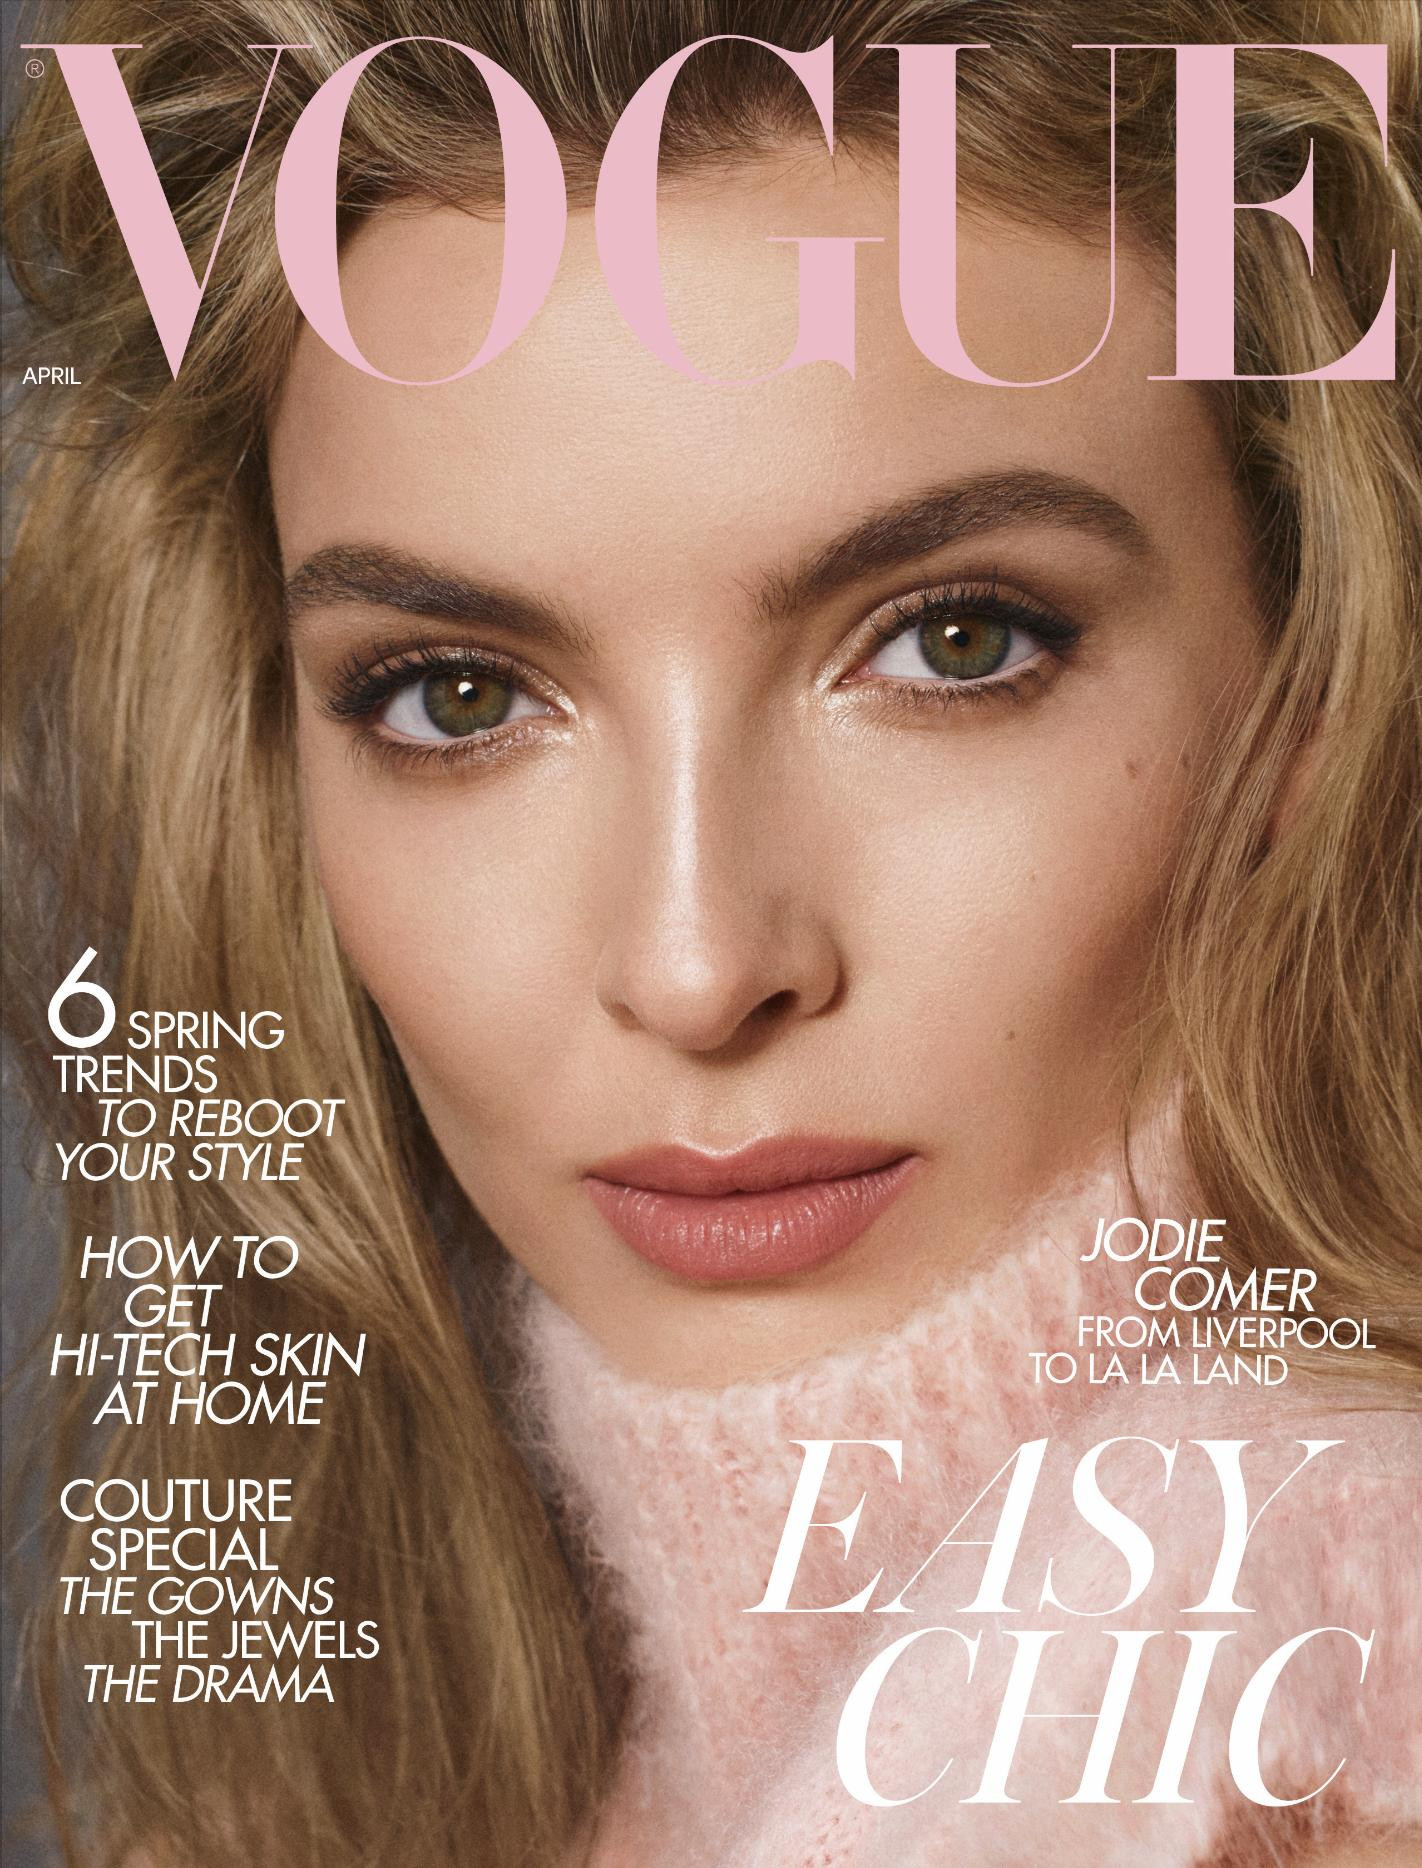 Vogue April Cover